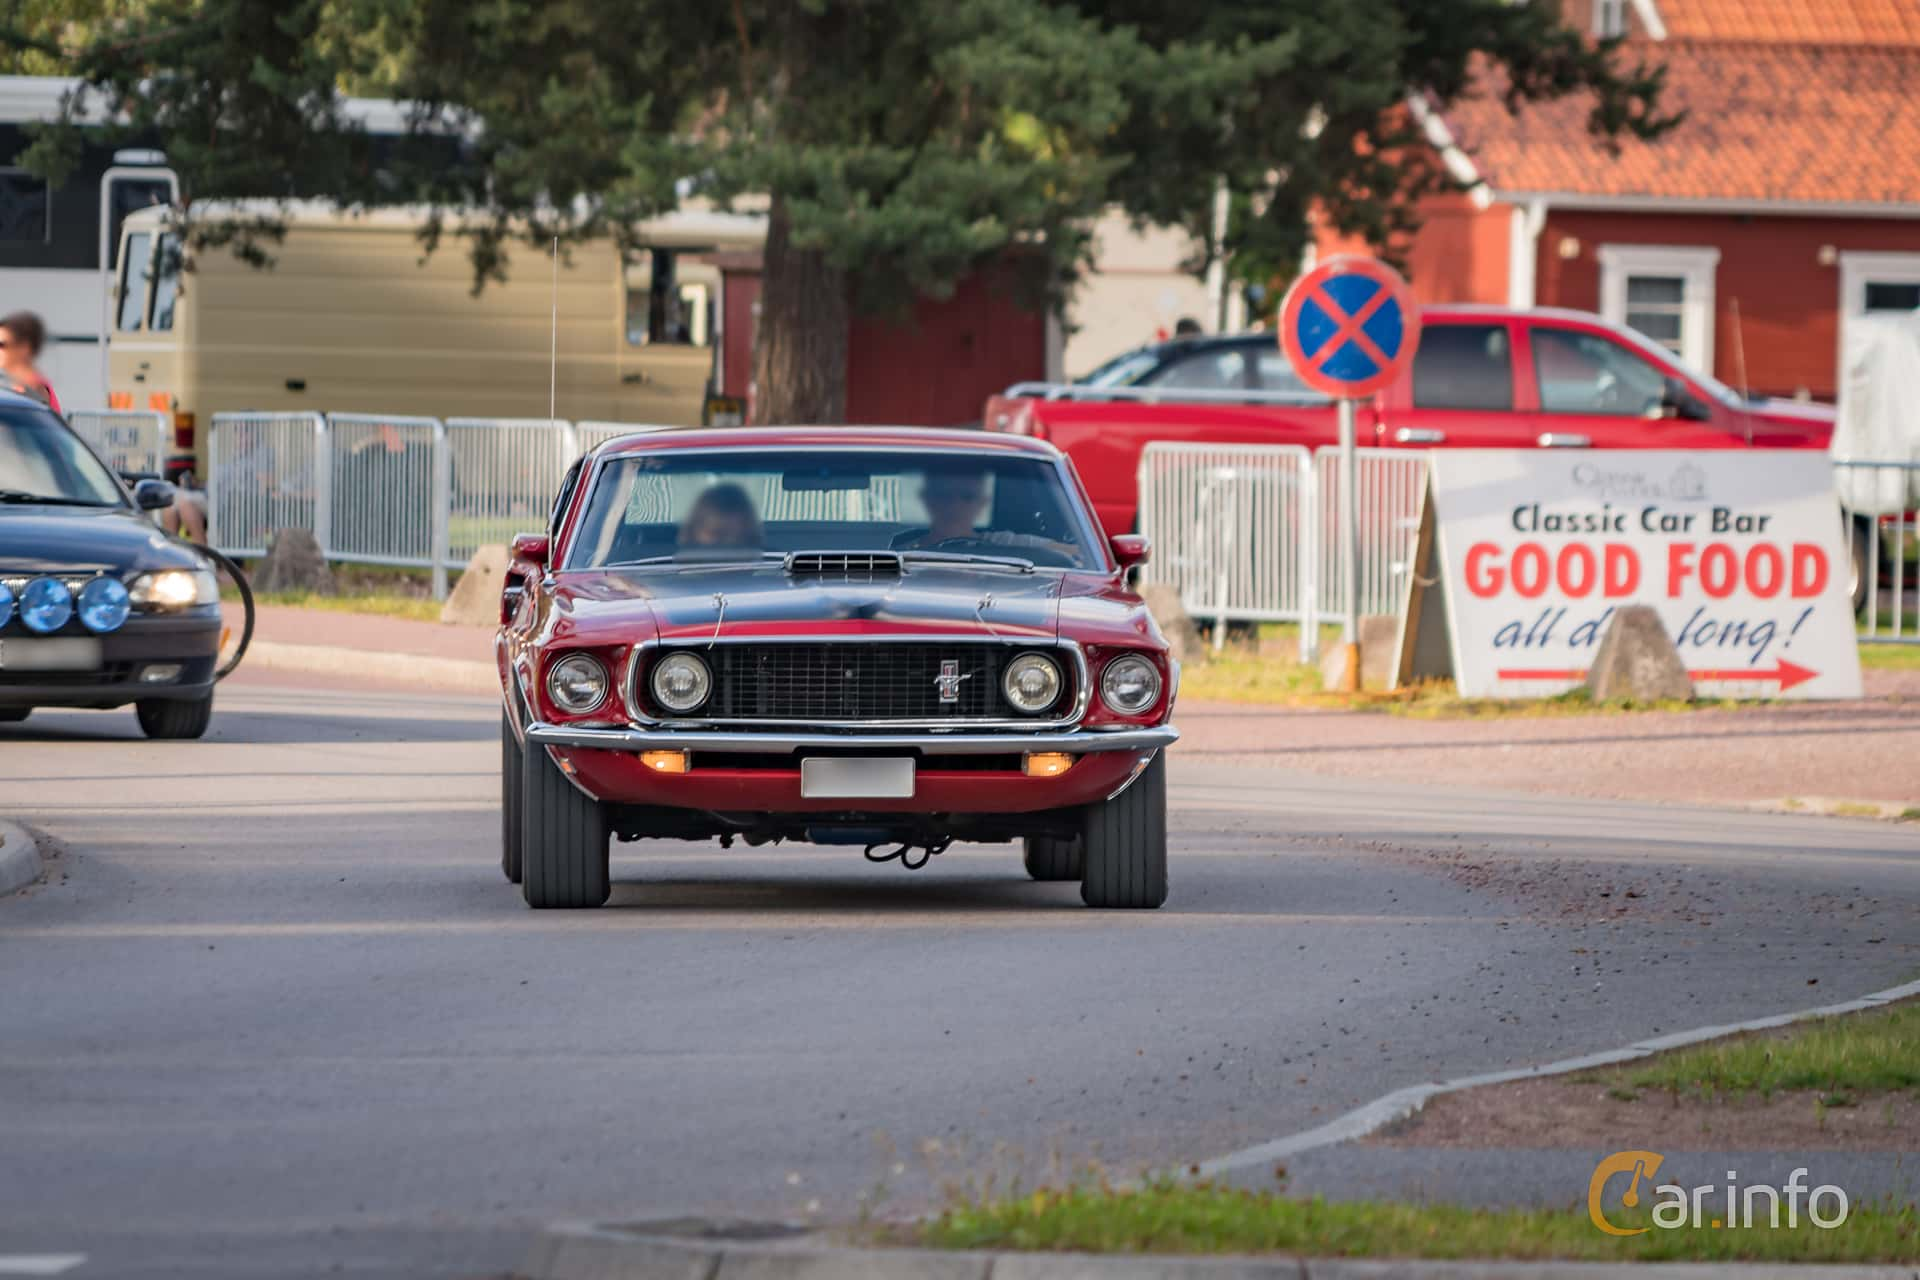 Ford Mustang Mach I 5.8 V8 Automatic, 254hp, 1969 at Classic Car Week Rättvik 2016